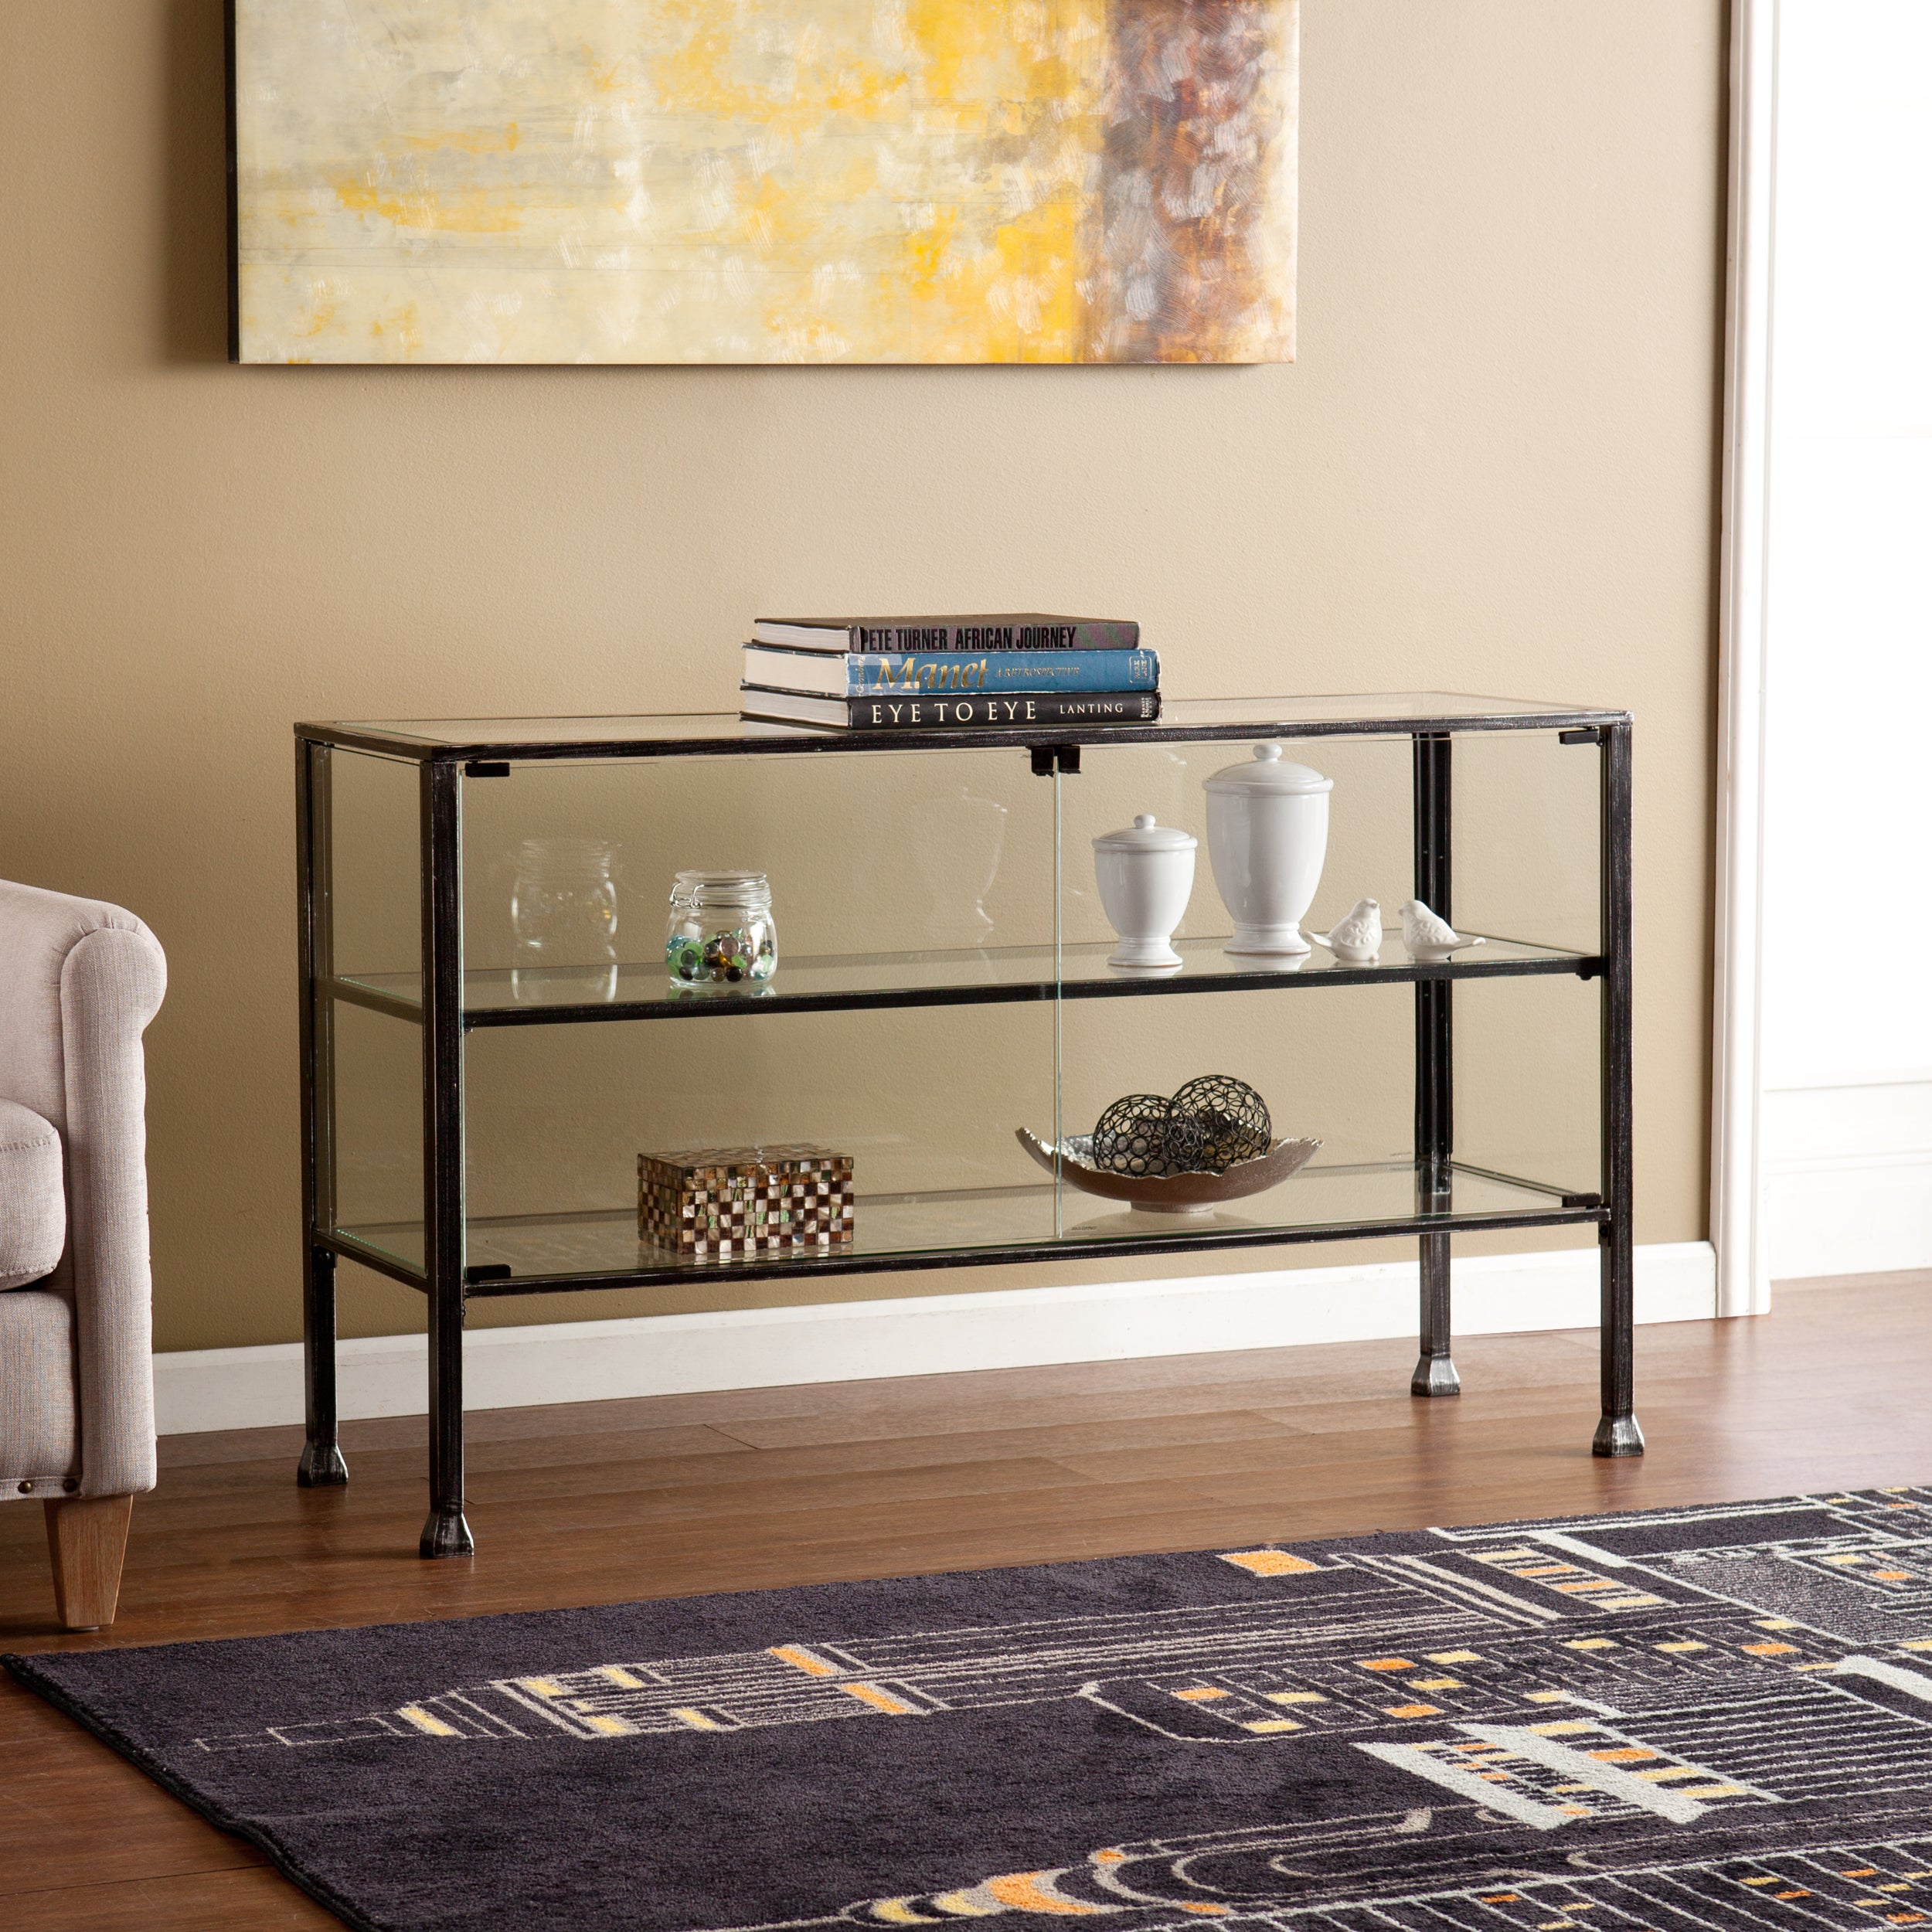 Harper Blvd Terrarium Display Curio/Sofa/ Console Table (...